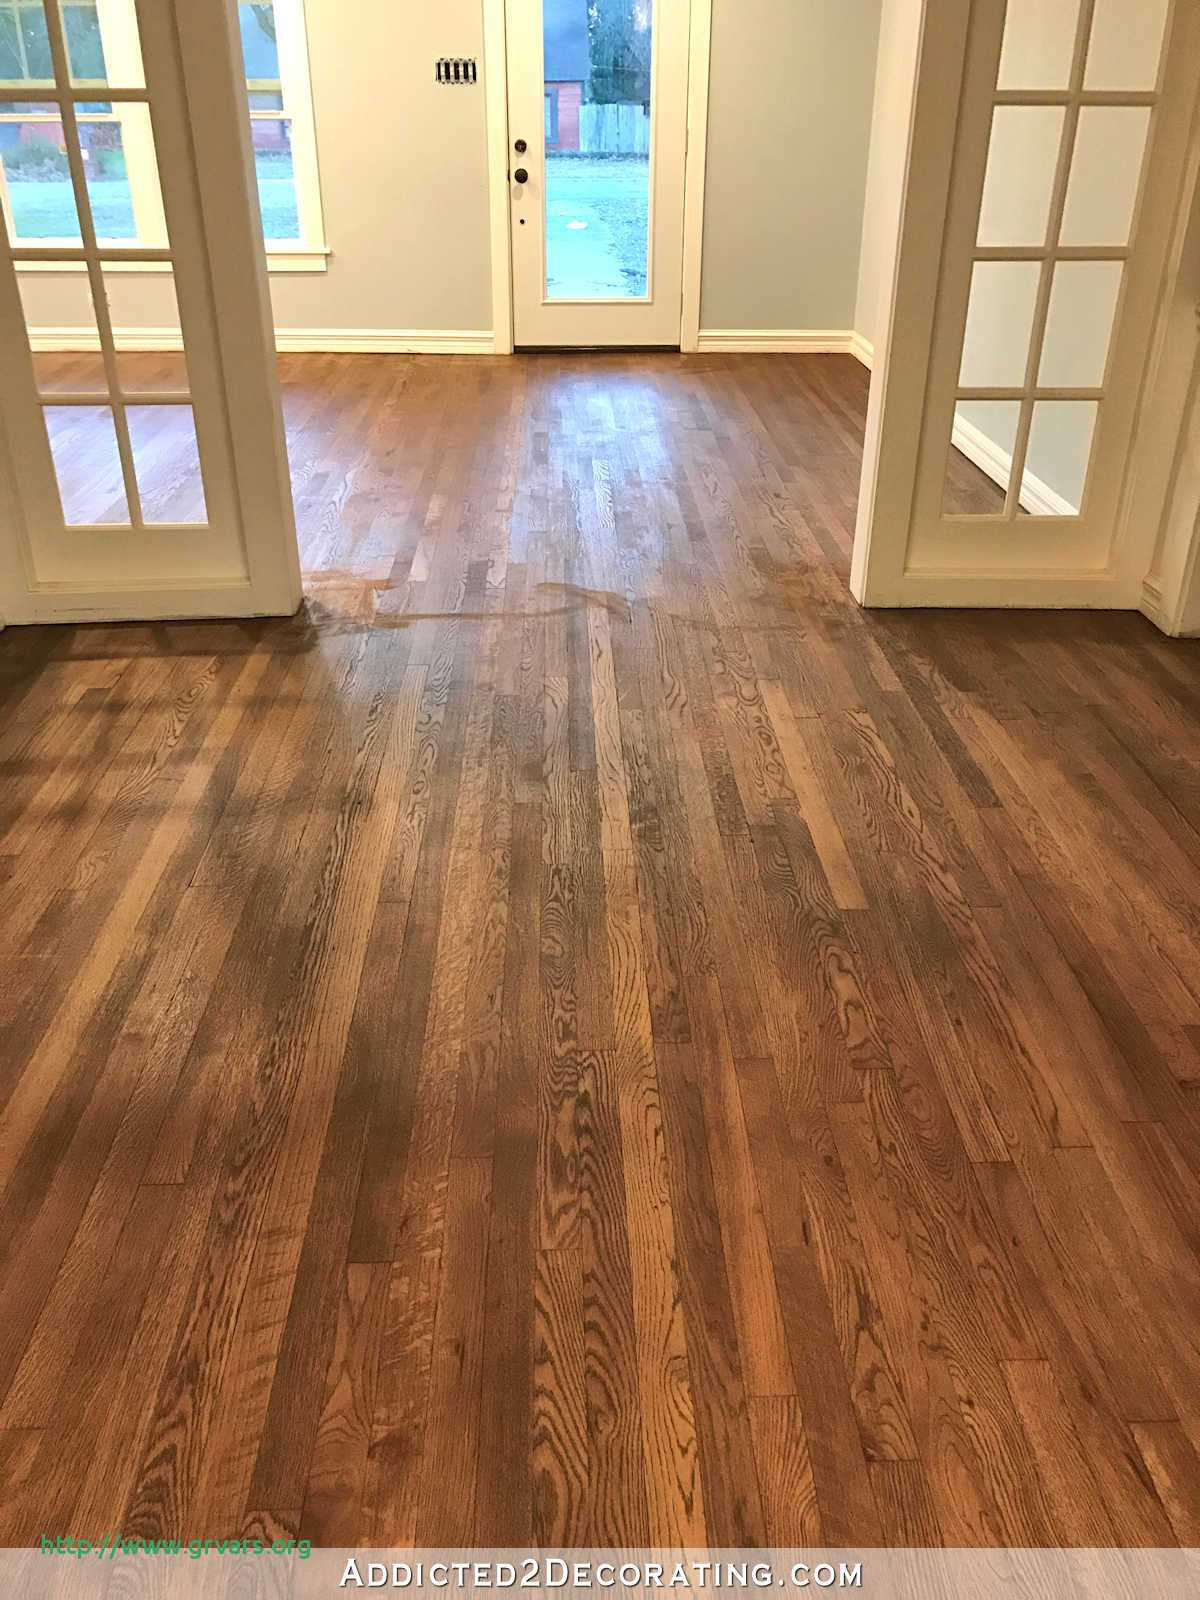 how much do hardwood floors cost calculator of 19 frais how much does it cost to put hardwood floors in ideas blog in how much does it cost to put hardwood floors in meilleur de adventures in staining my